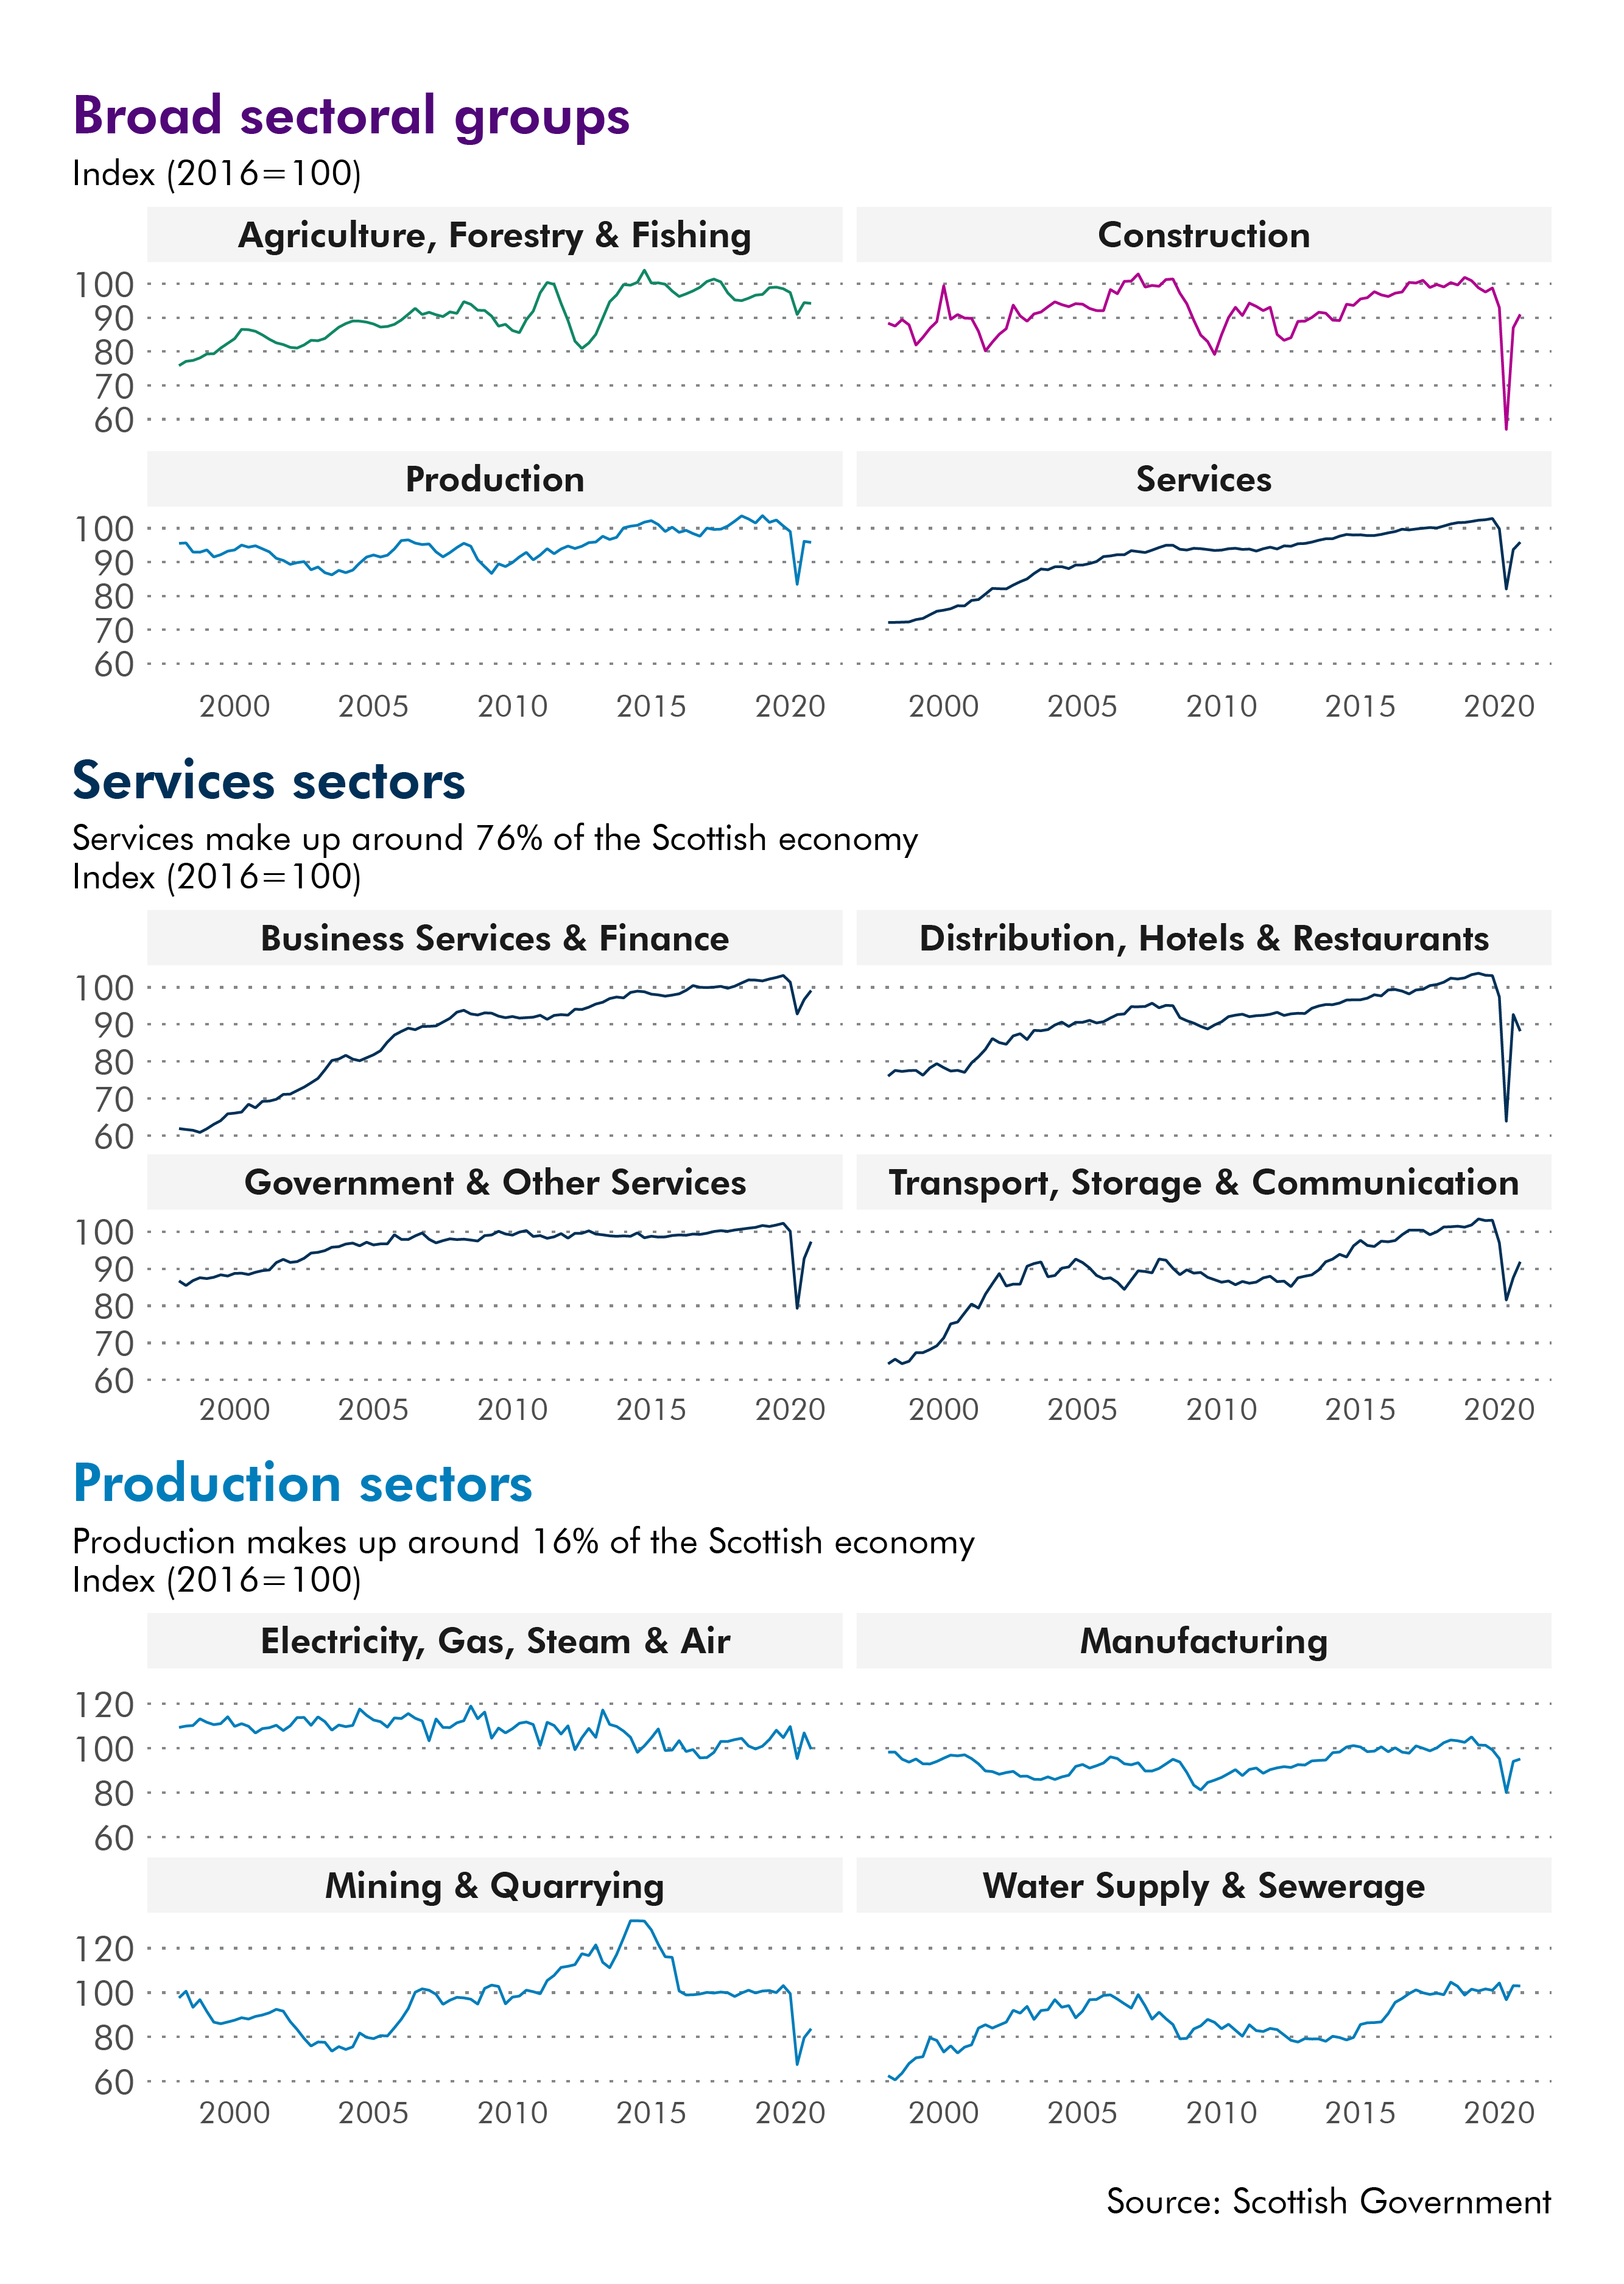 The data in this image can be accessed below. Output in the service sectors have been hit harder than production sectors.